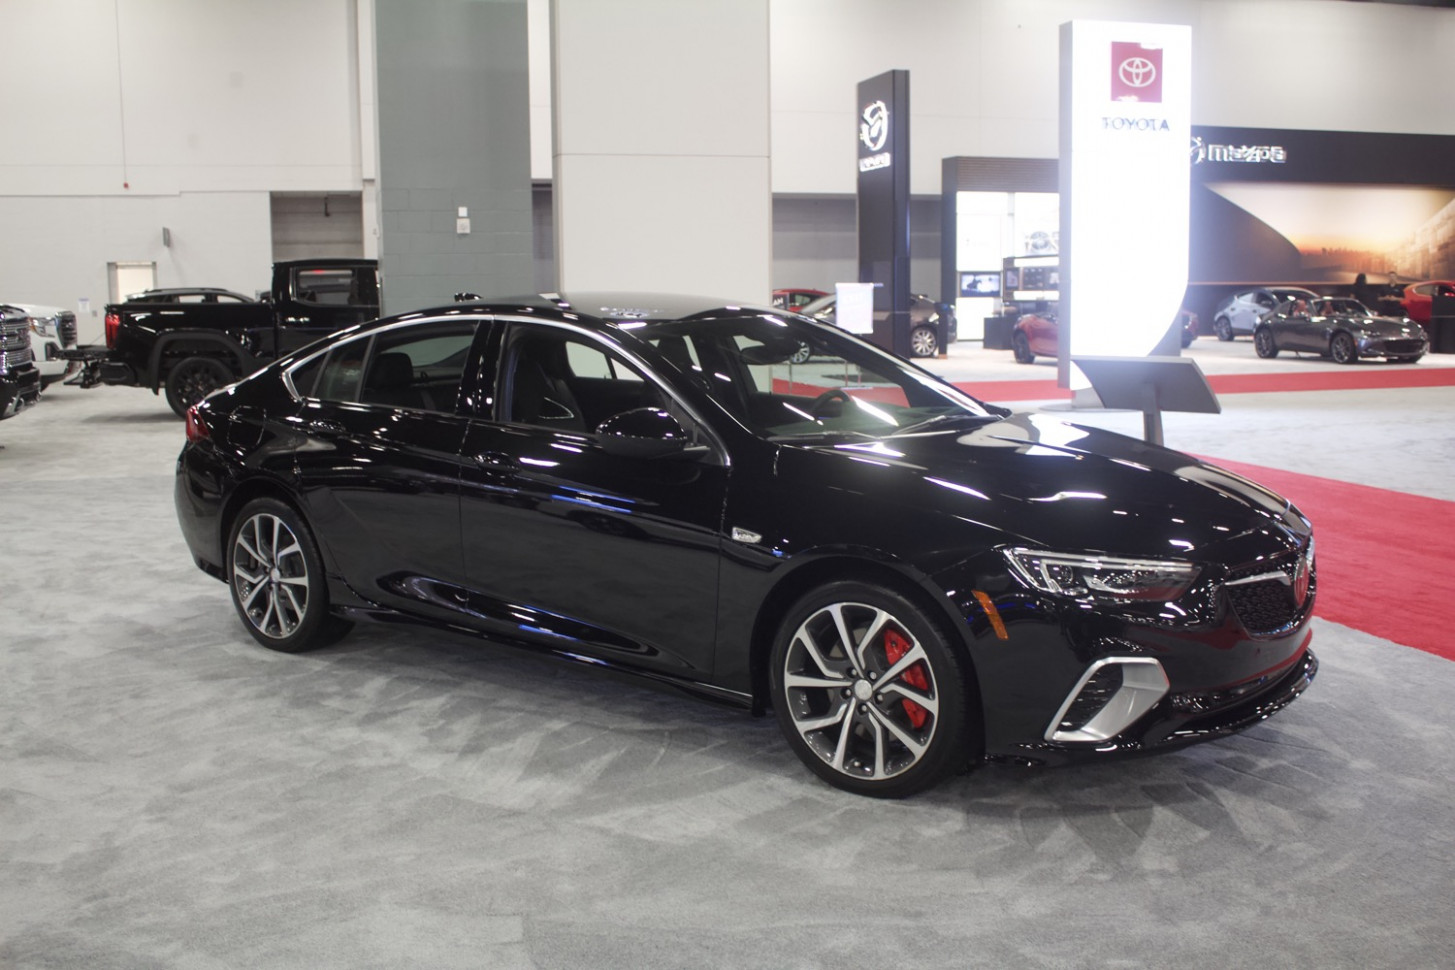 Rumors 2022 Buick Regal Gs Coupe